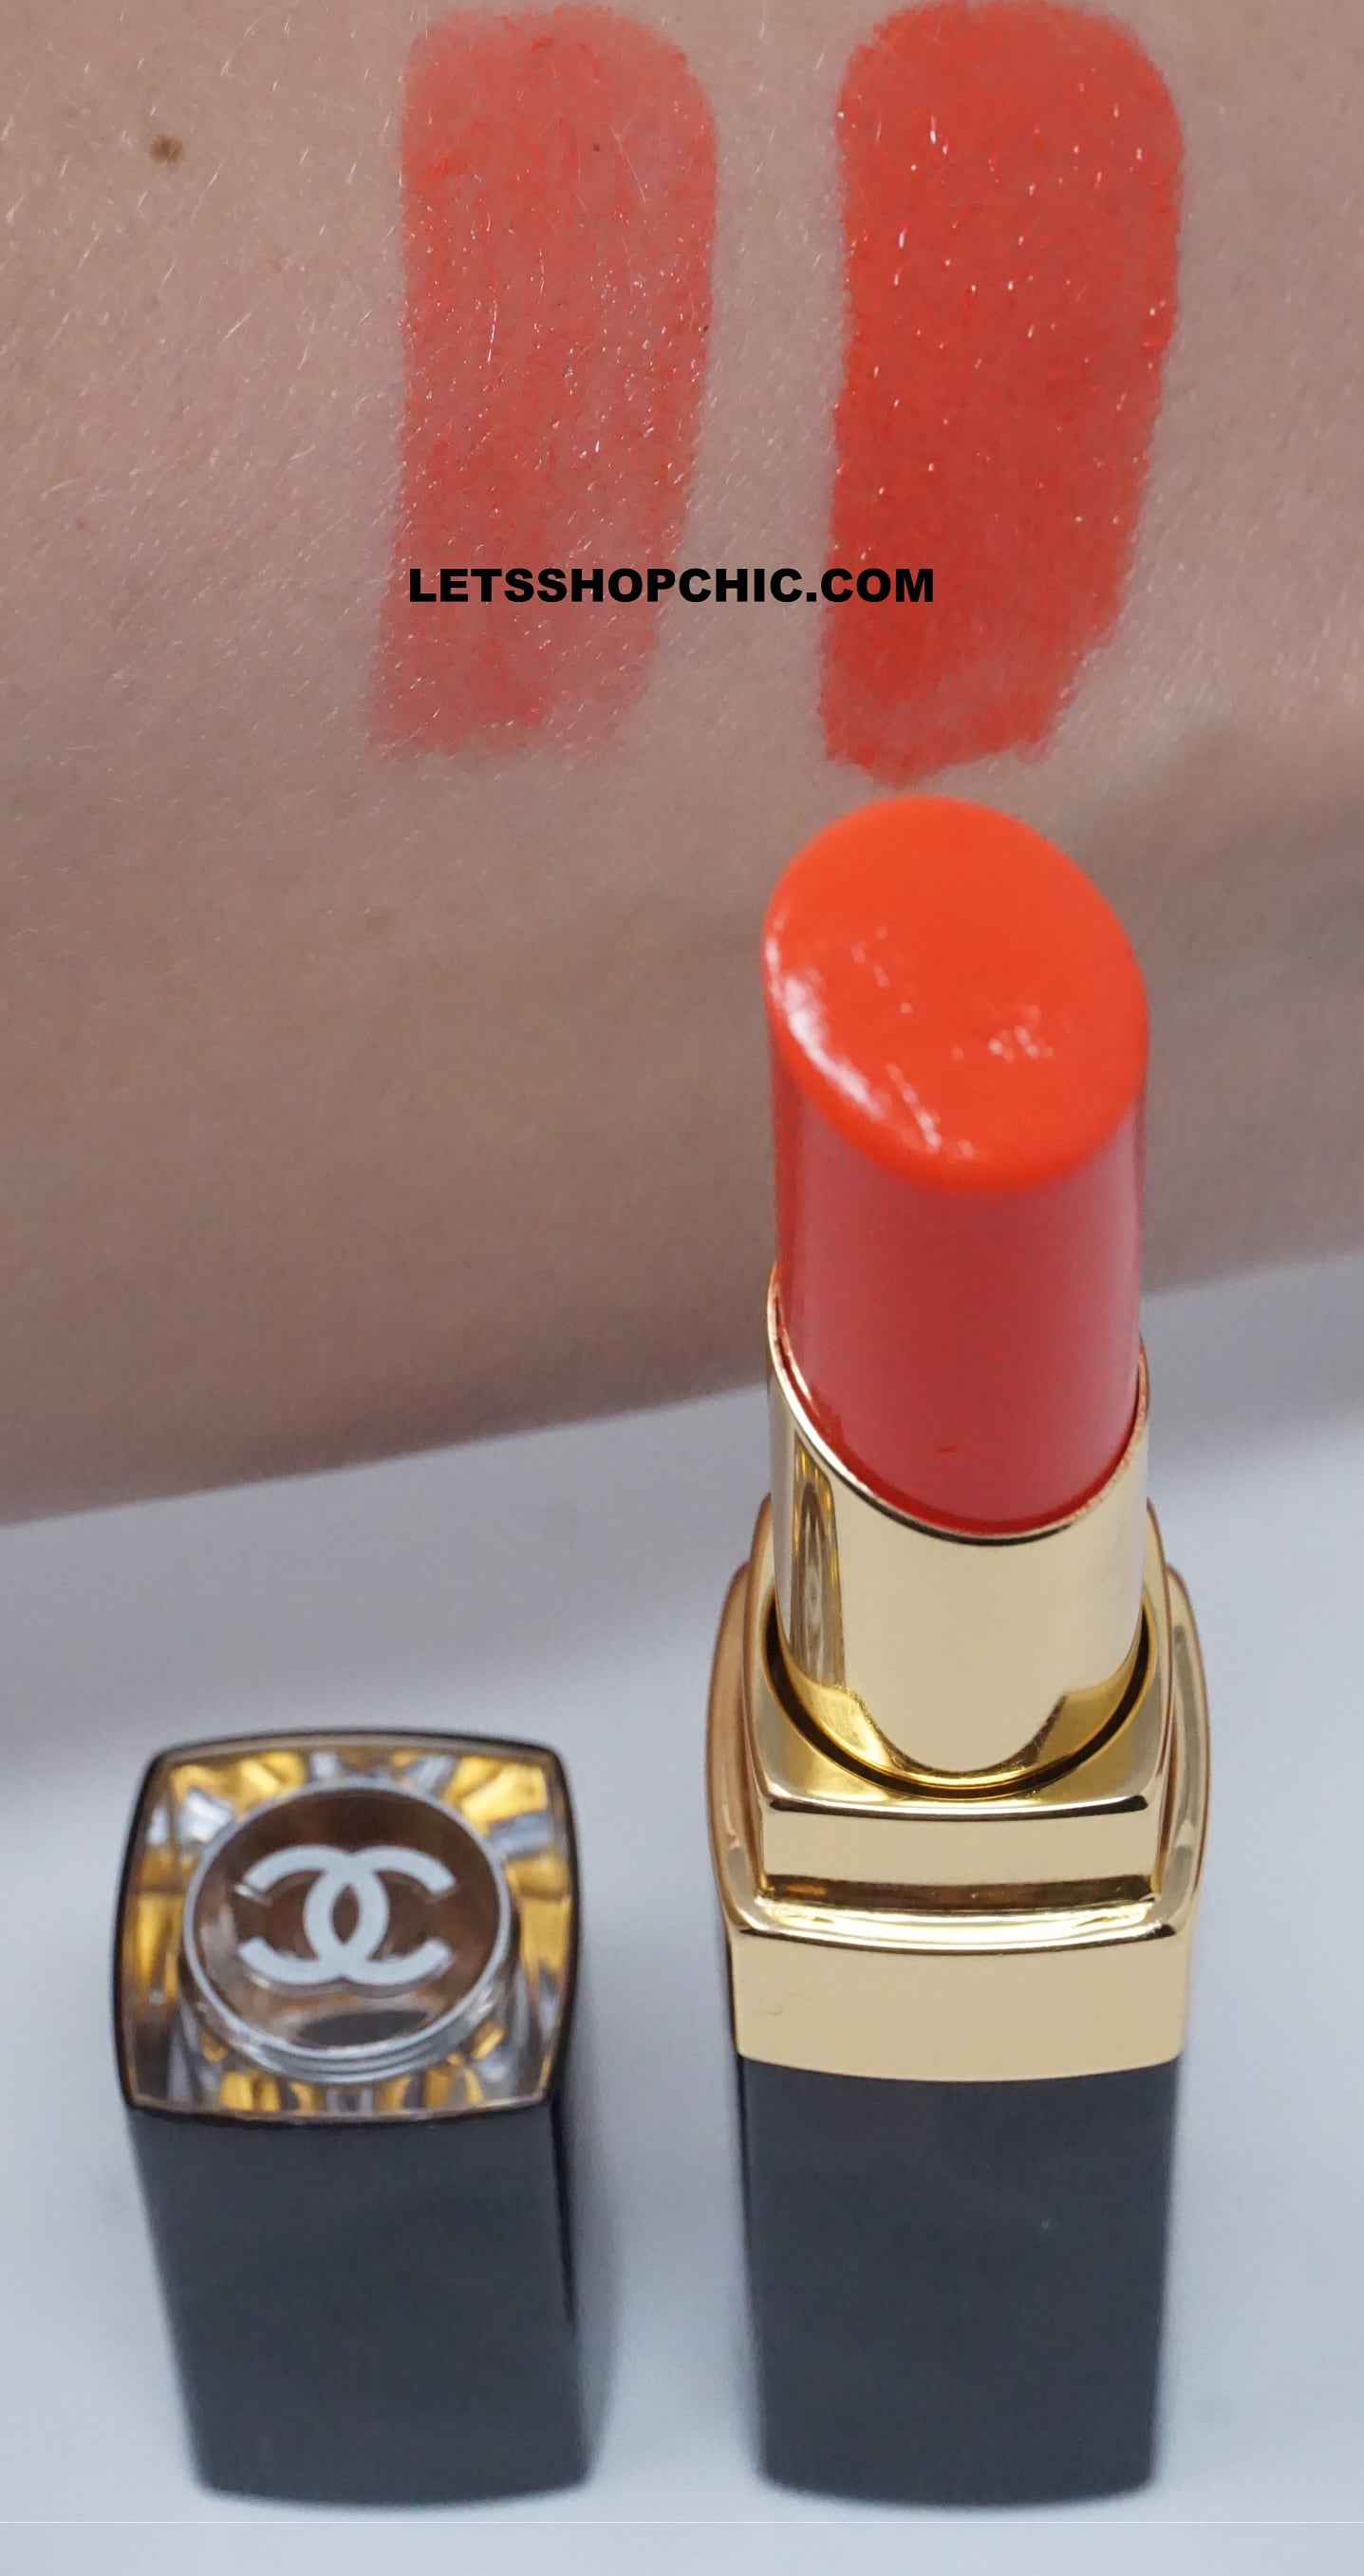 Chanel Rouge Coco Flash Lipstick 60 Beat swatch